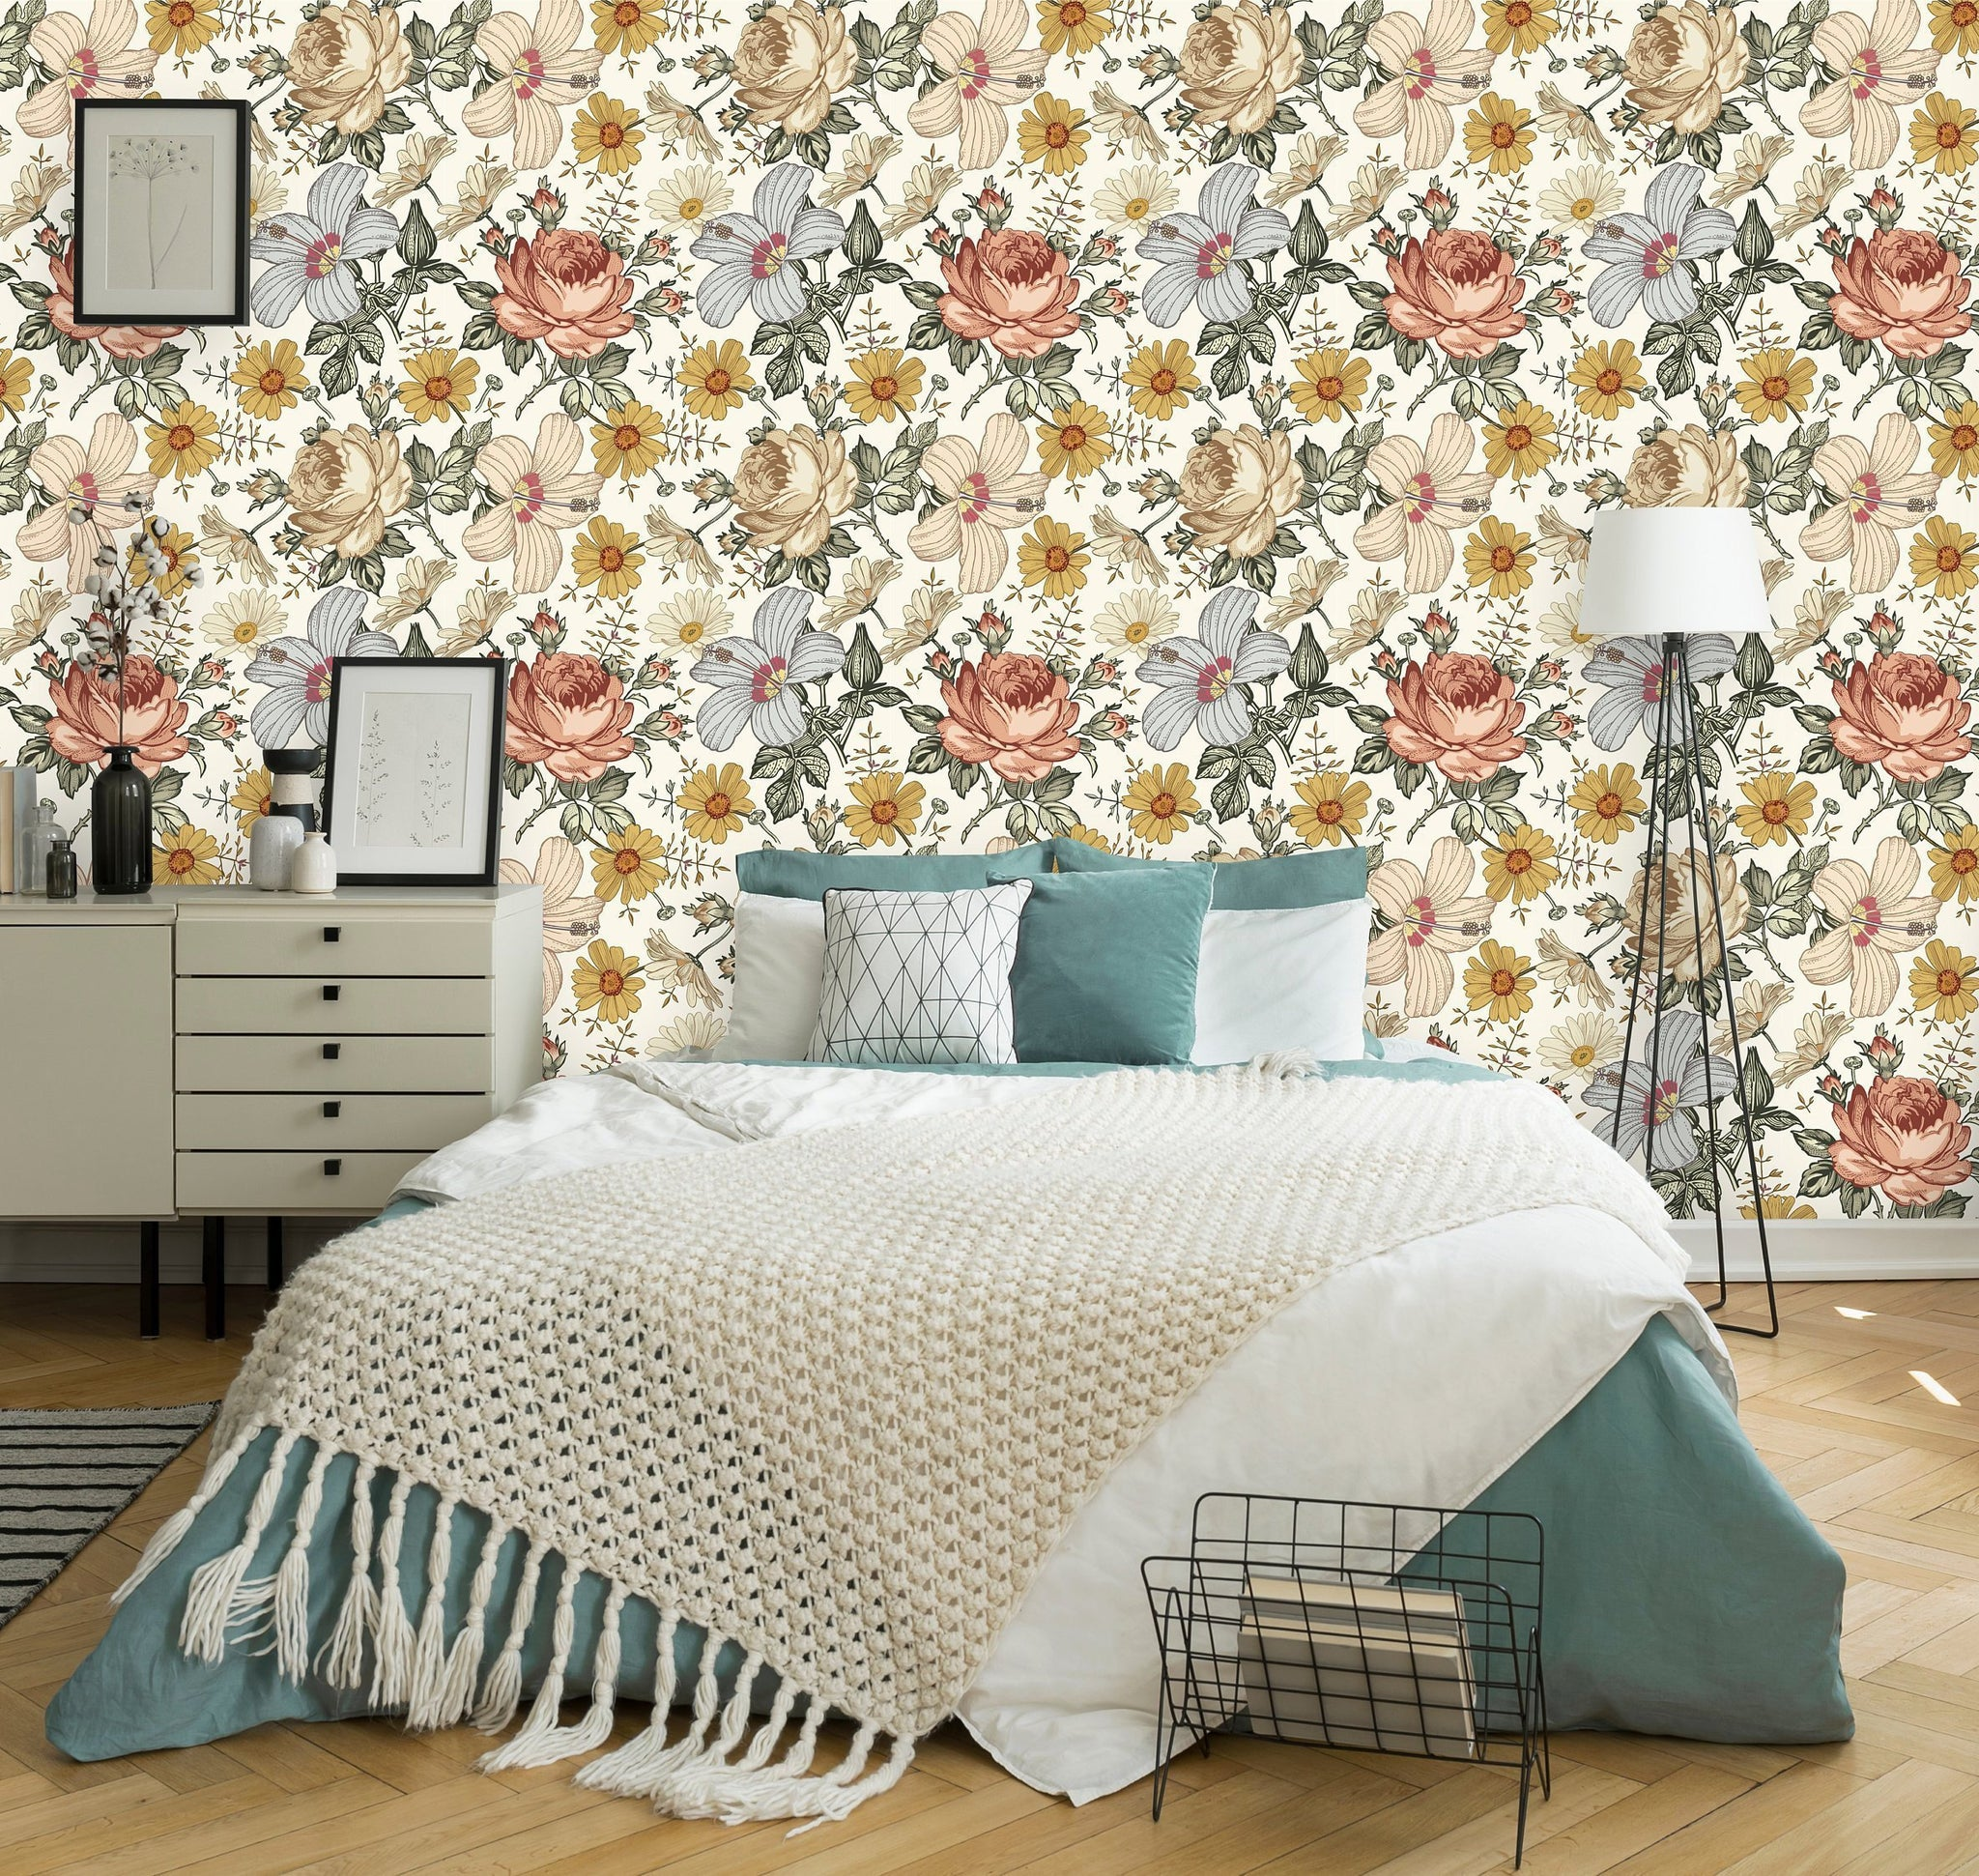 Floral Vintage Peel and Stick Removable Wallpaper